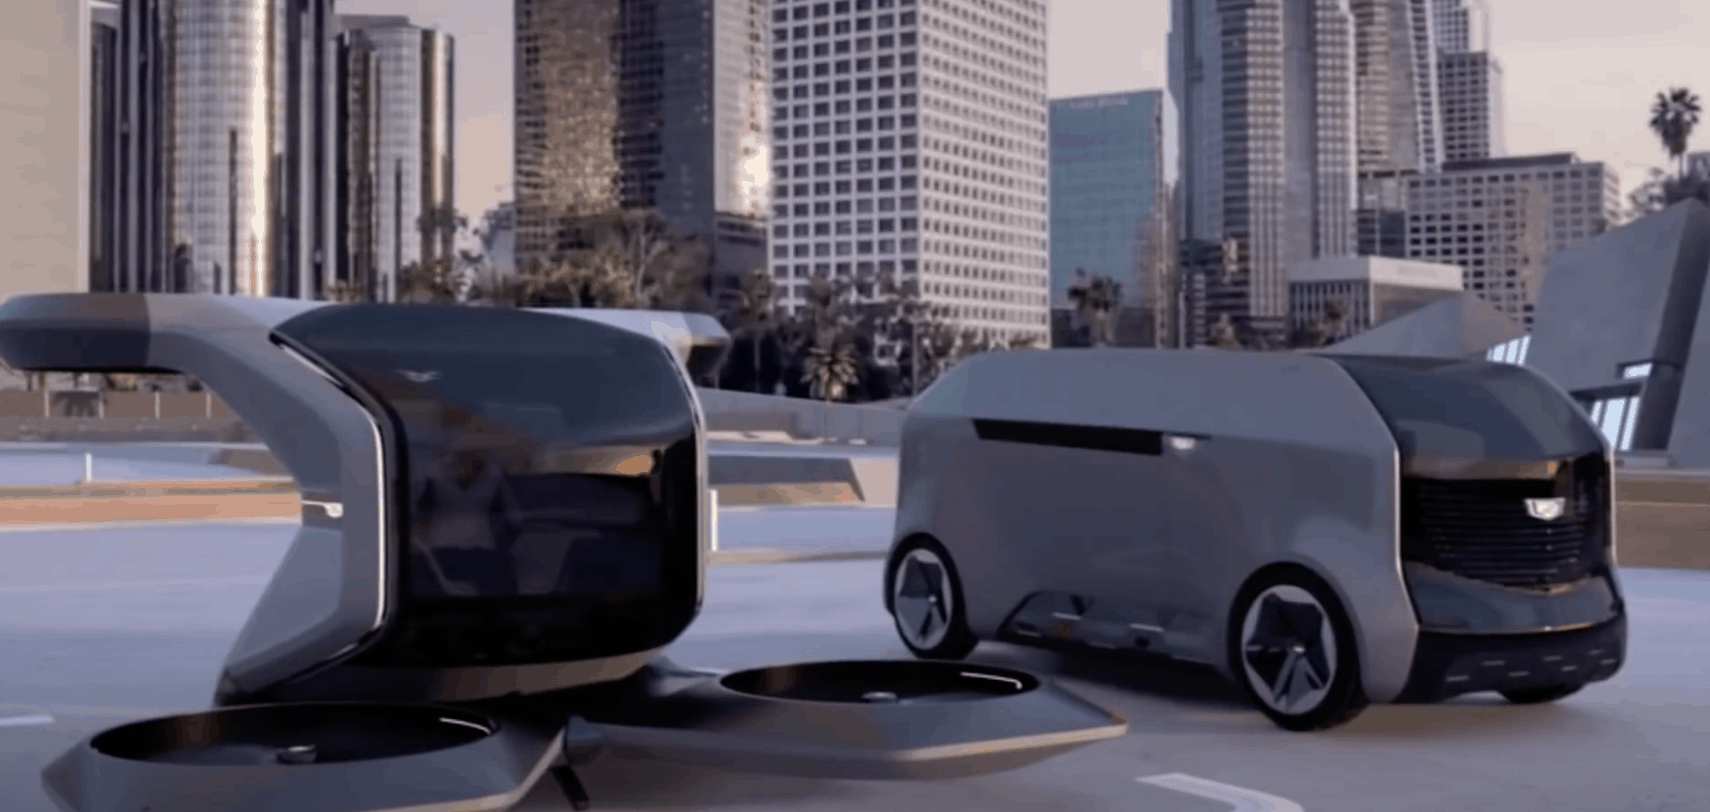 GM electric vehicles of the future